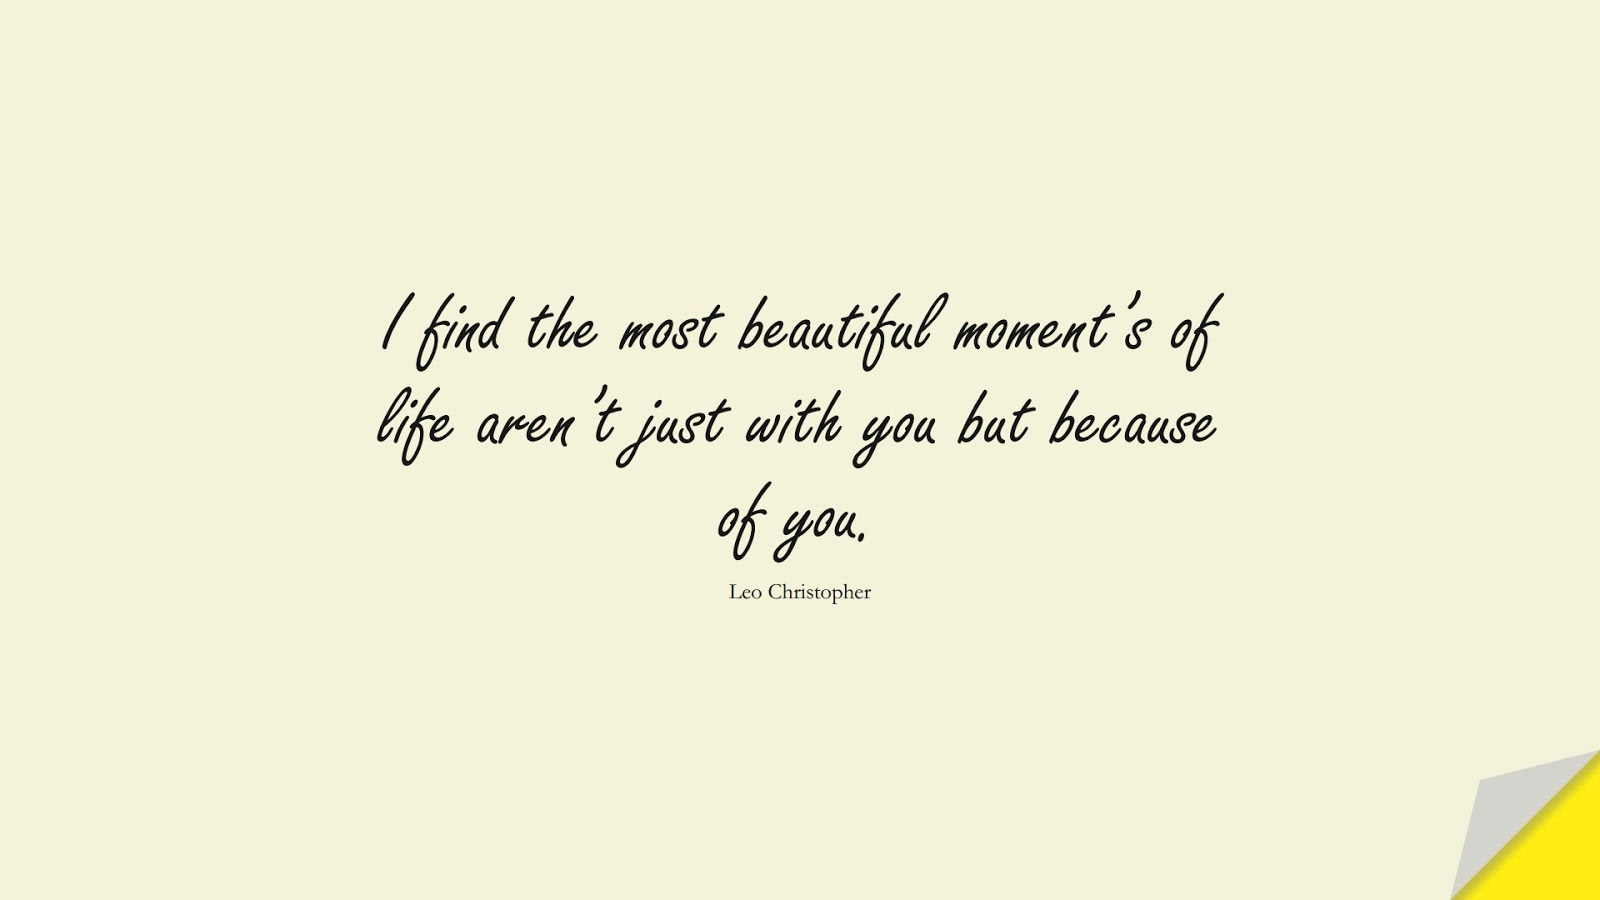 I find the most beautiful moment's of life aren't just with you but because of you. (Leo Christopher);  #LoveQuotes